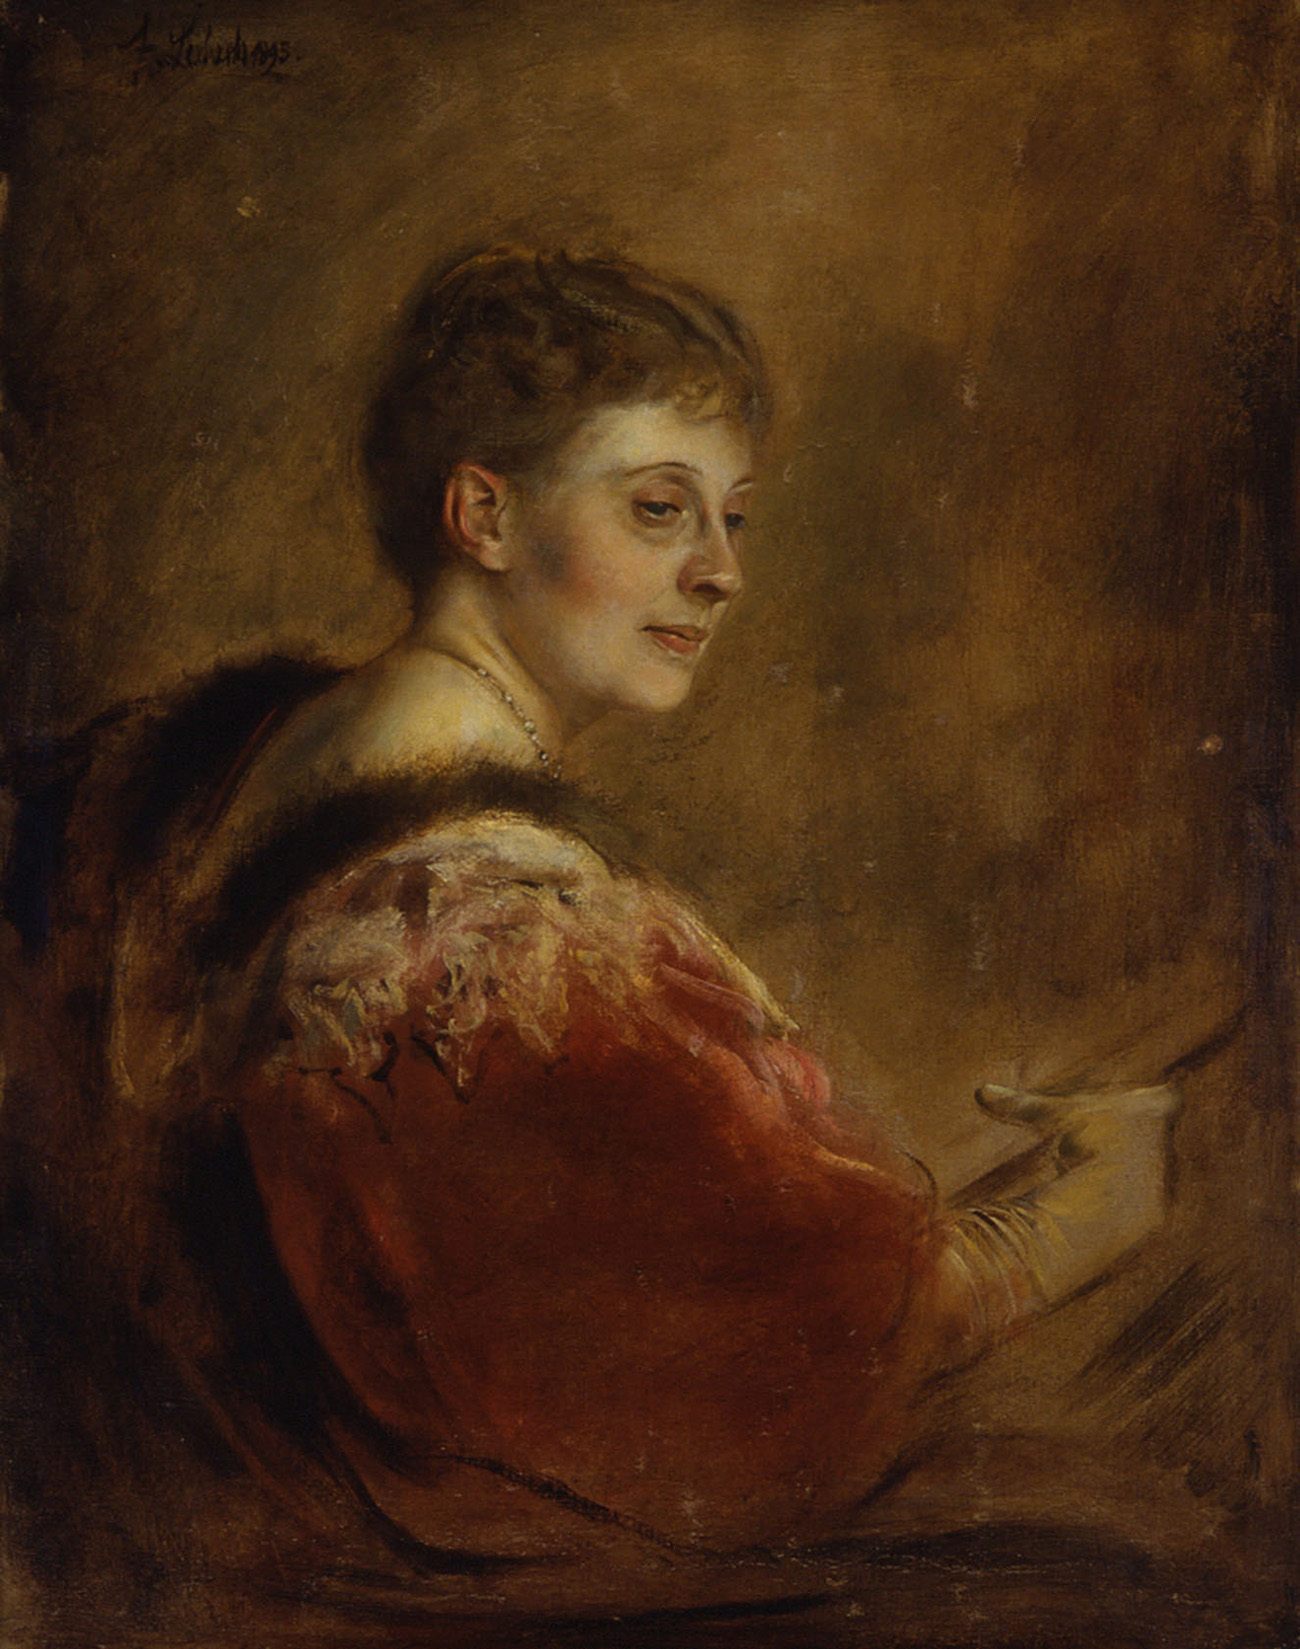 An oil portrait of a woman in a red dress, looking off to her right. The painting has visible brushwork in many shades of brown, beige, and pink